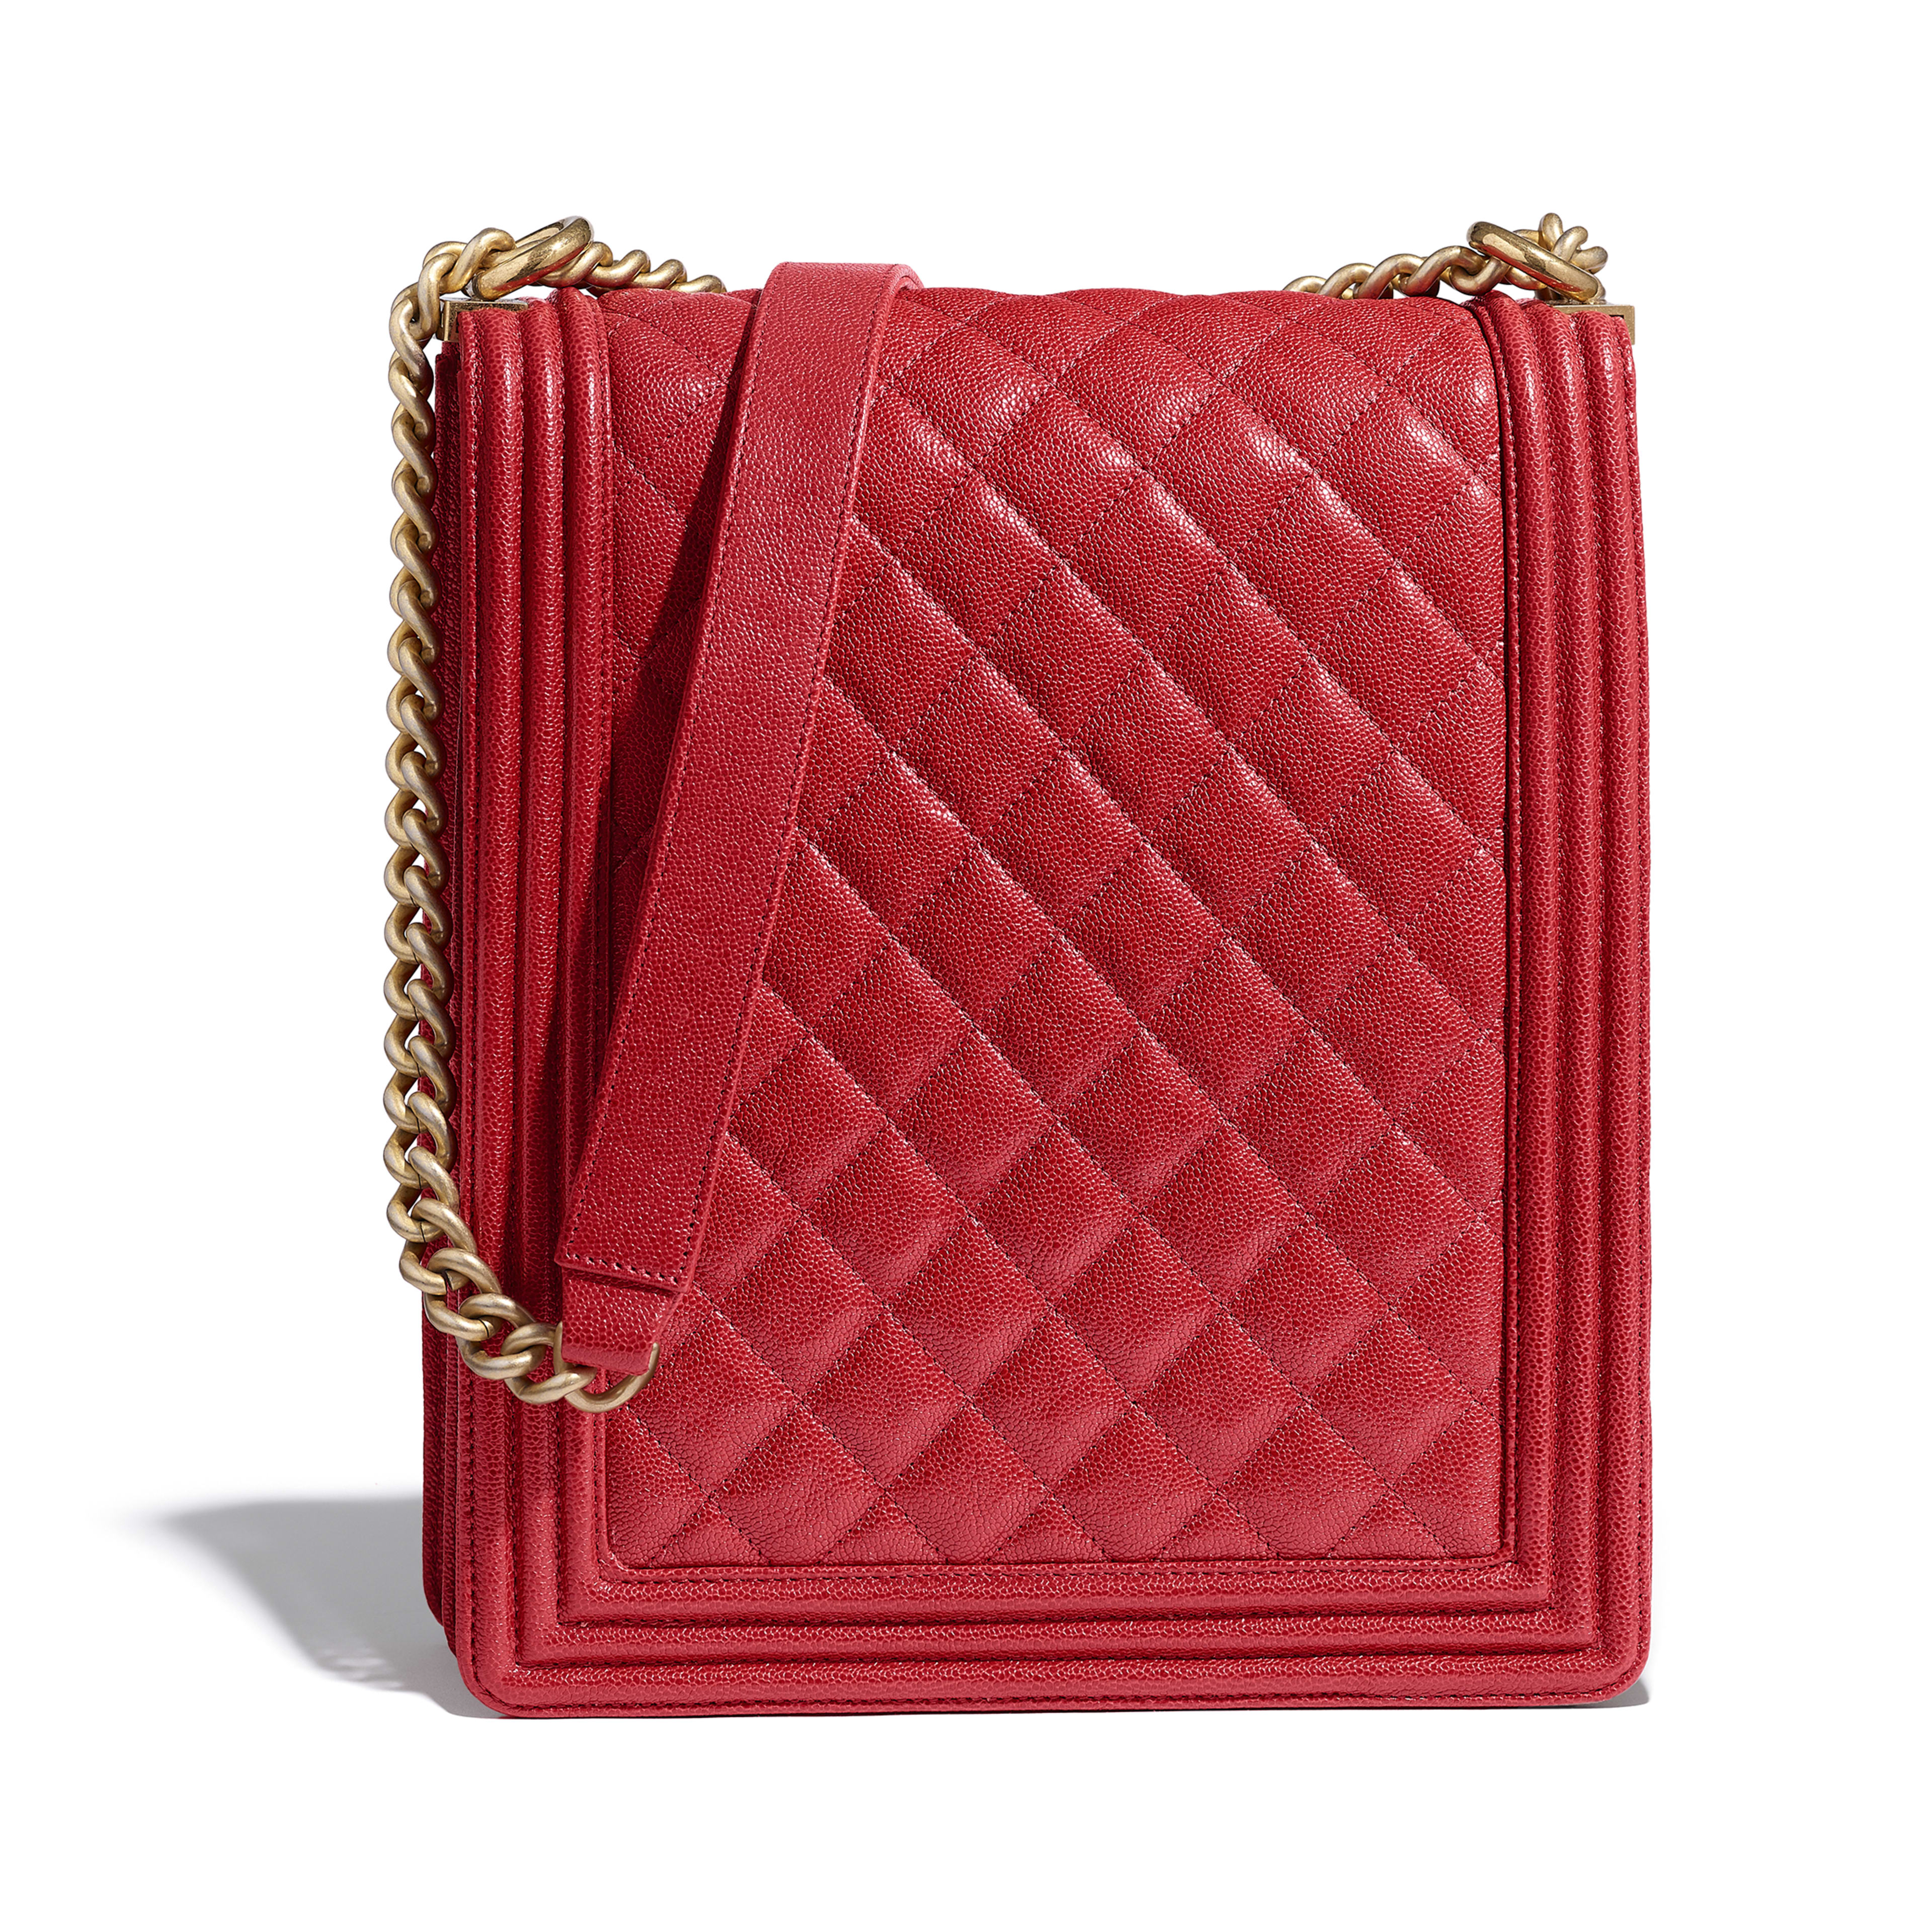 d27baee7706b2 Large BOY CHANEL Handbag - Red - Grained Calfskin   Gold-Tone Metal -  Alternative ...